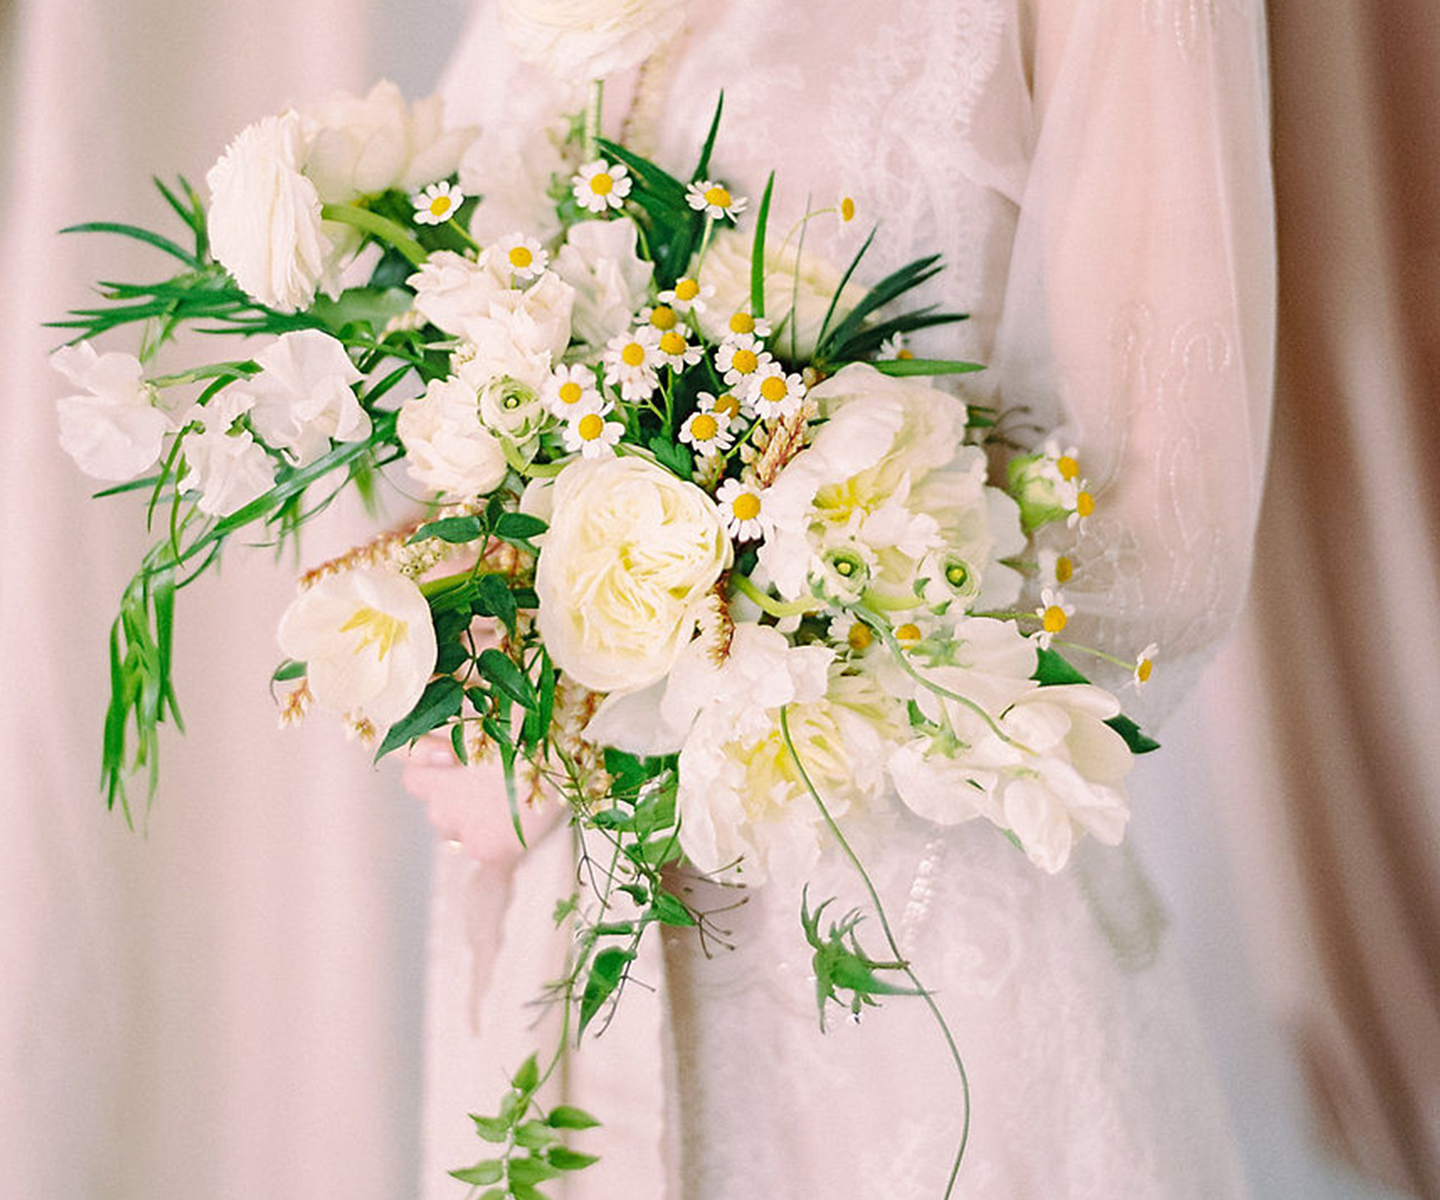 Bridal Bouquet Inspiration for Spring: 12 of the Prettiest Bouquets We've Seen This Spring in Alberta and the Rockies -Fall For Florals on The Bronte Bride